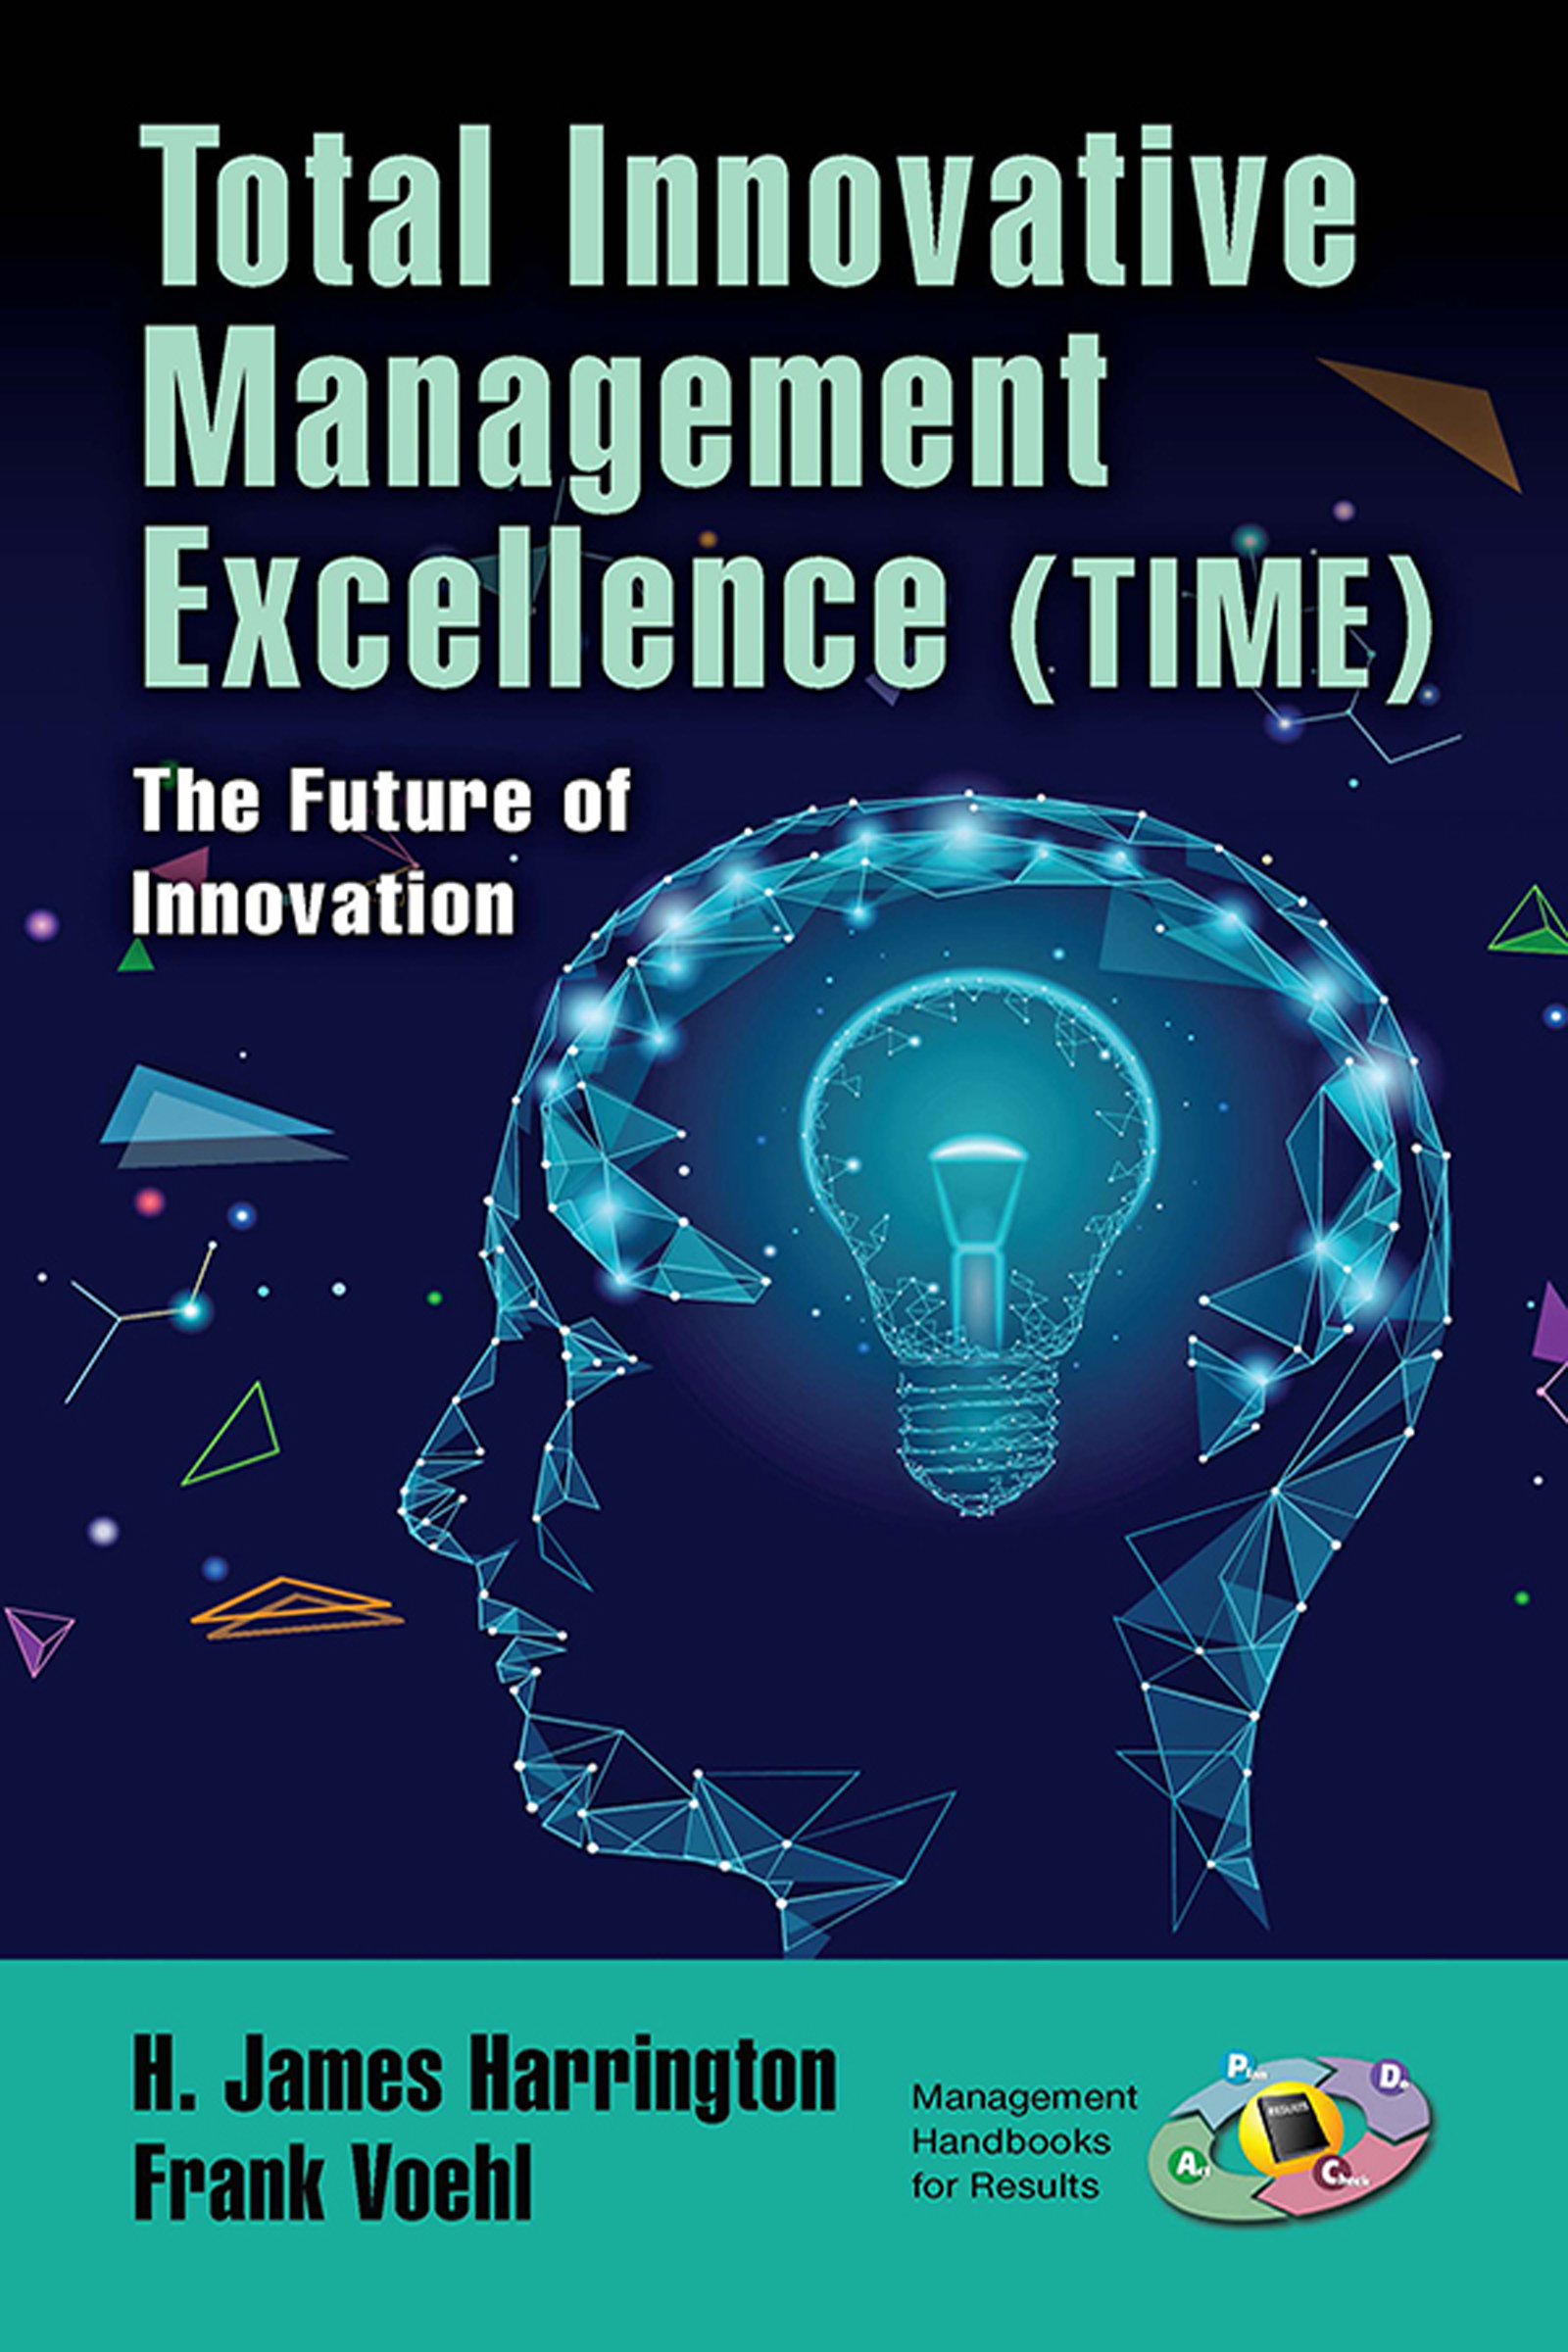 Introduction to Total Innovation Management Excellence